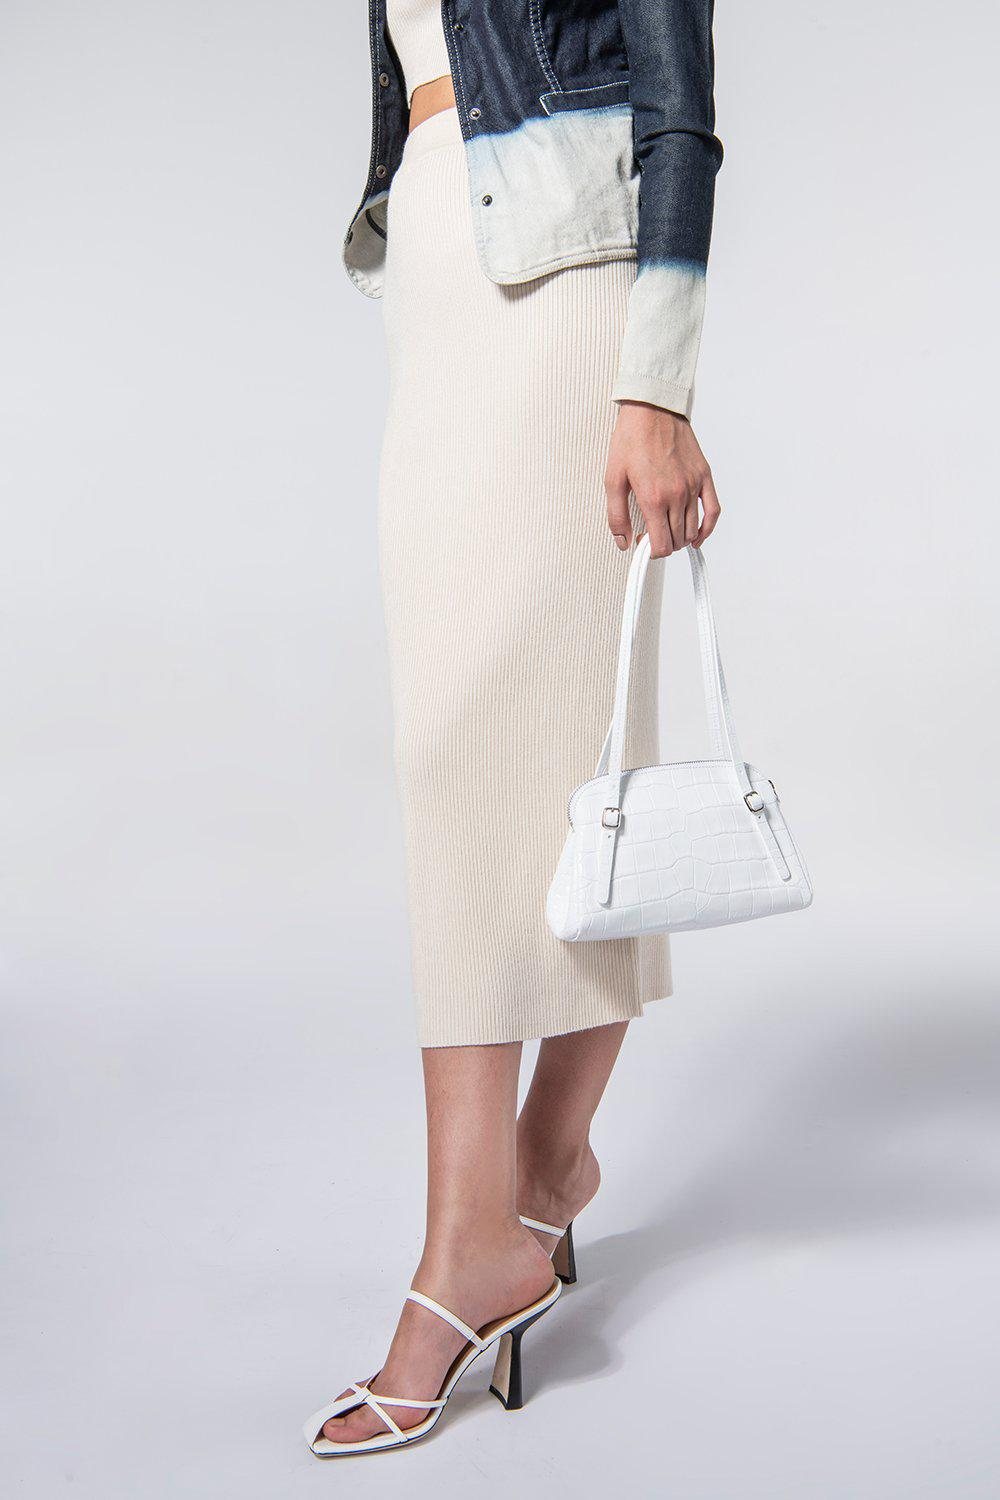 Lora White Croco Embossed Leather 5